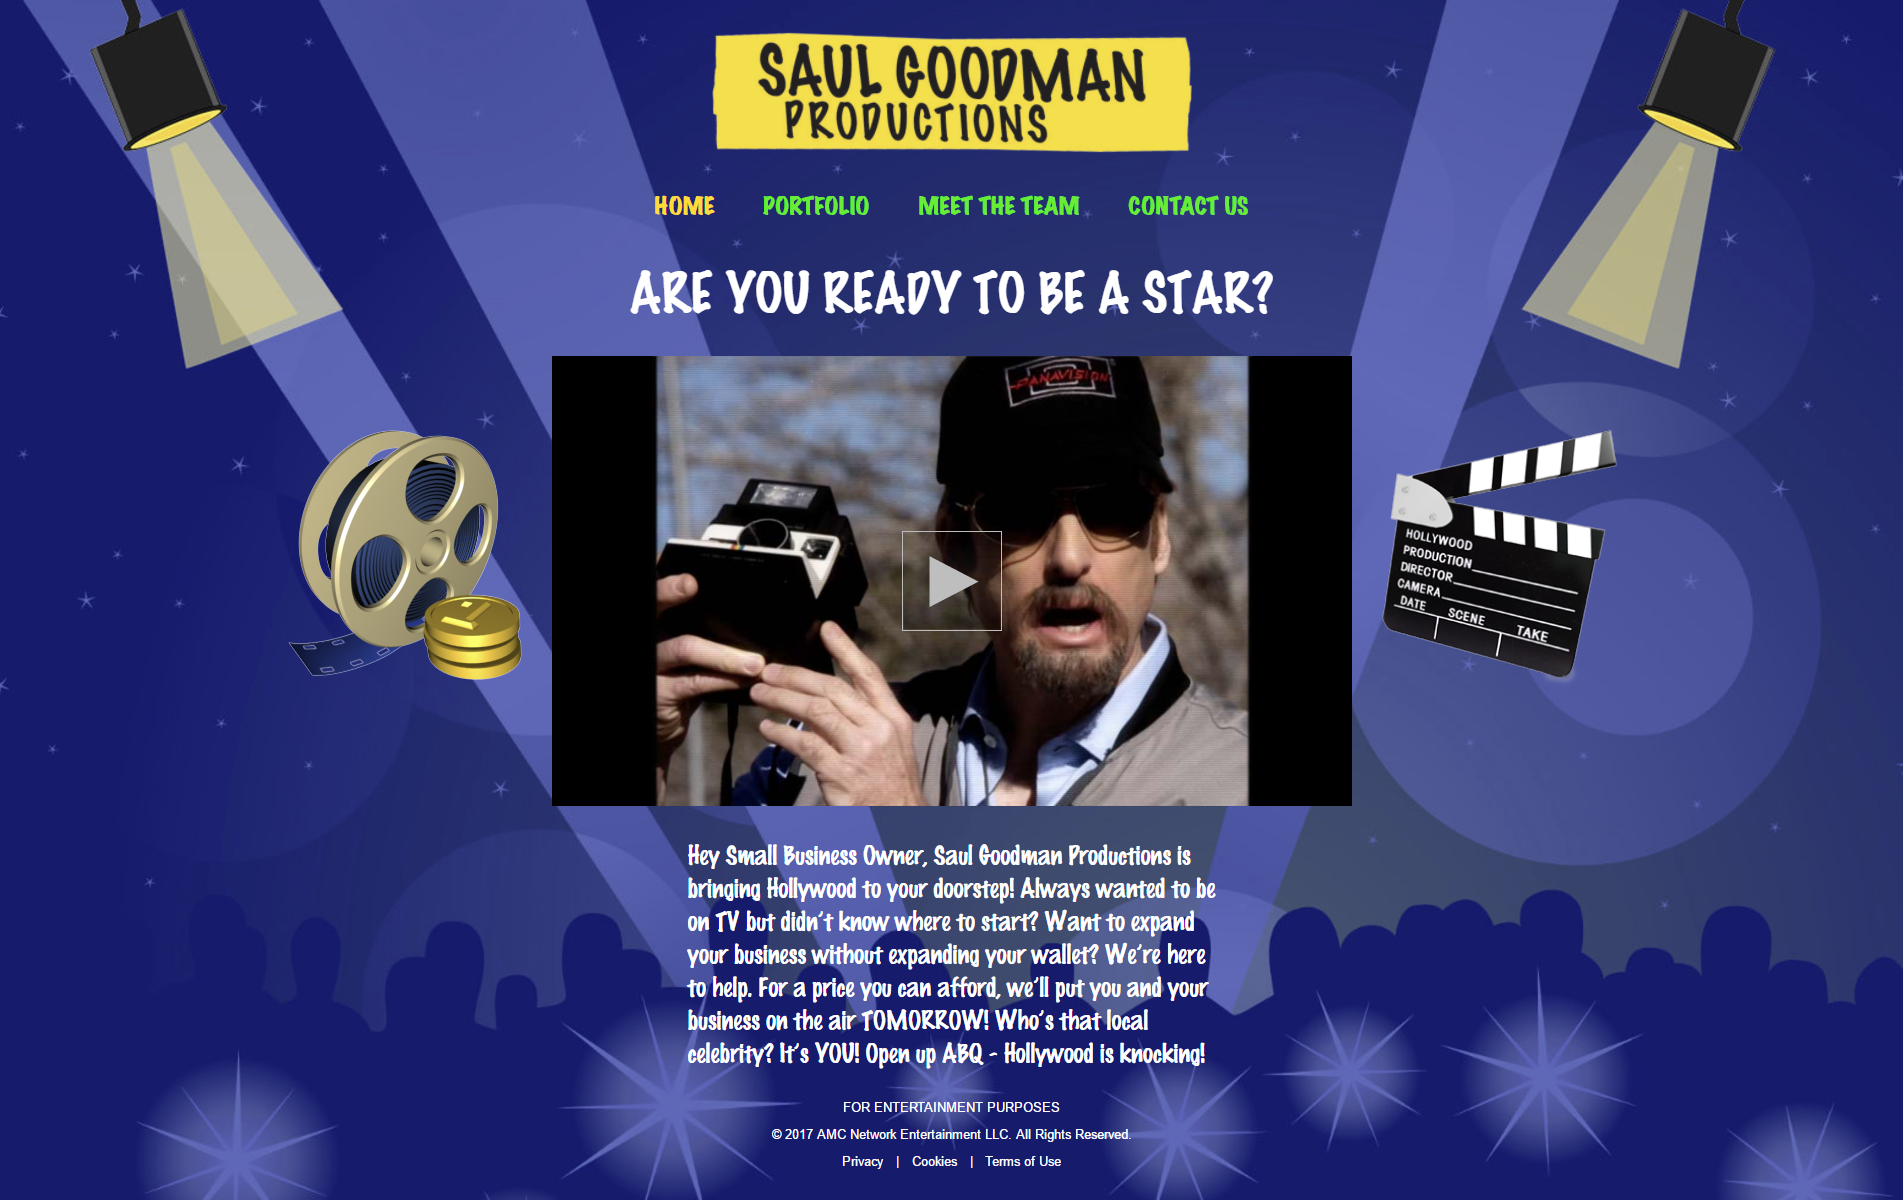 Expenses breaking bad wiki fandom powered by wikia saul goodman productions has a real website available at this address httpsaulgoodmanproductions colourmoves